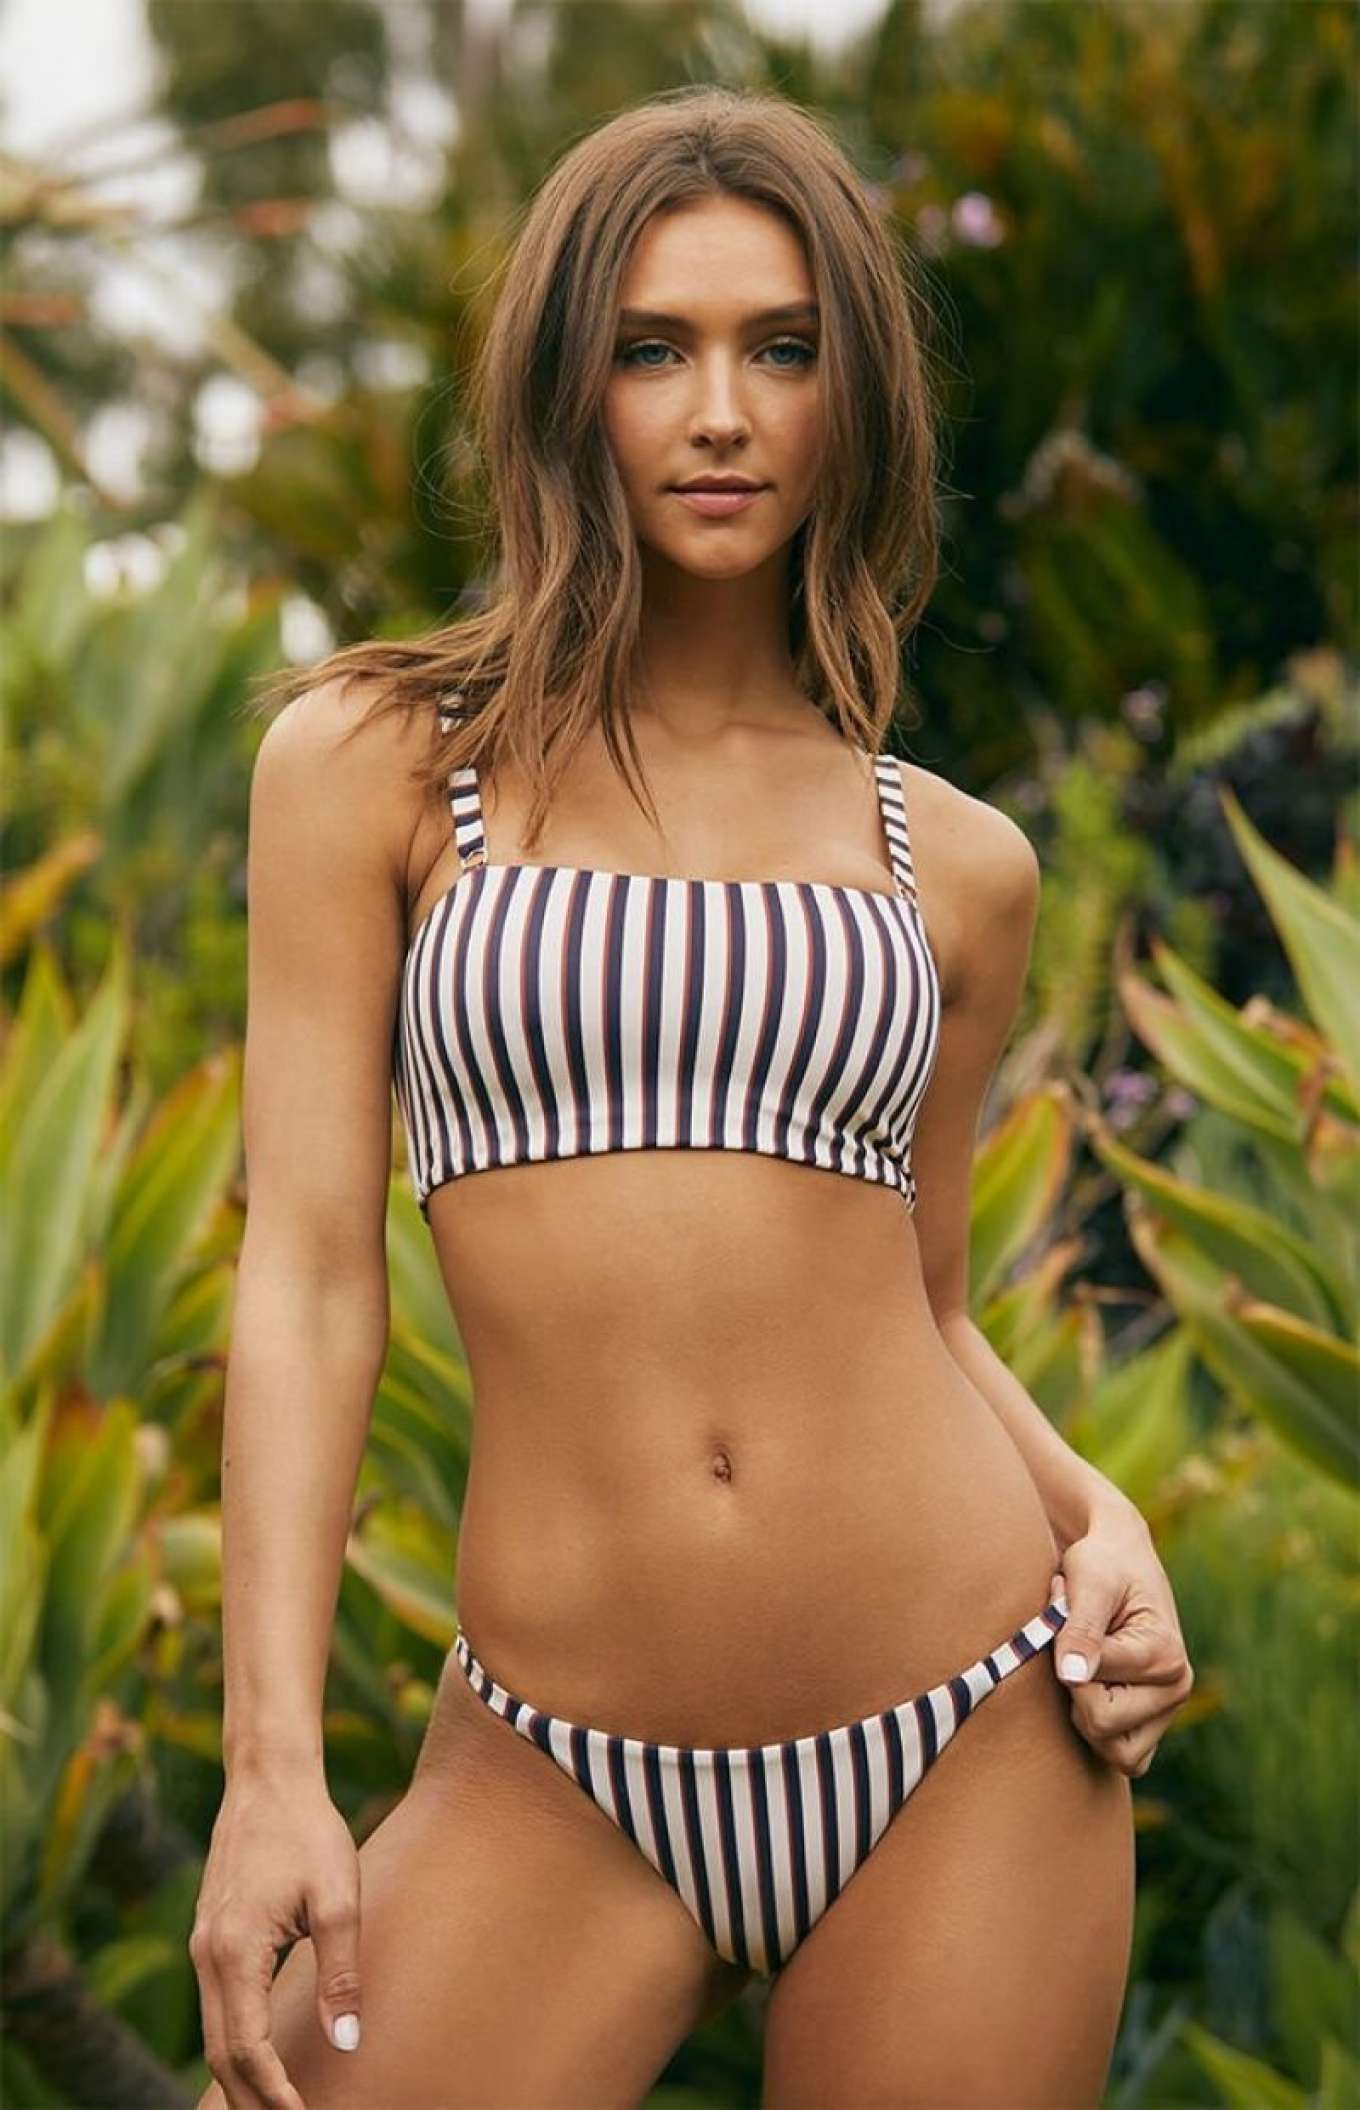 Rachel Cook 2019 : Rachel Cook – Photoshoot for Pacsun Swimwear 2019 collection-20